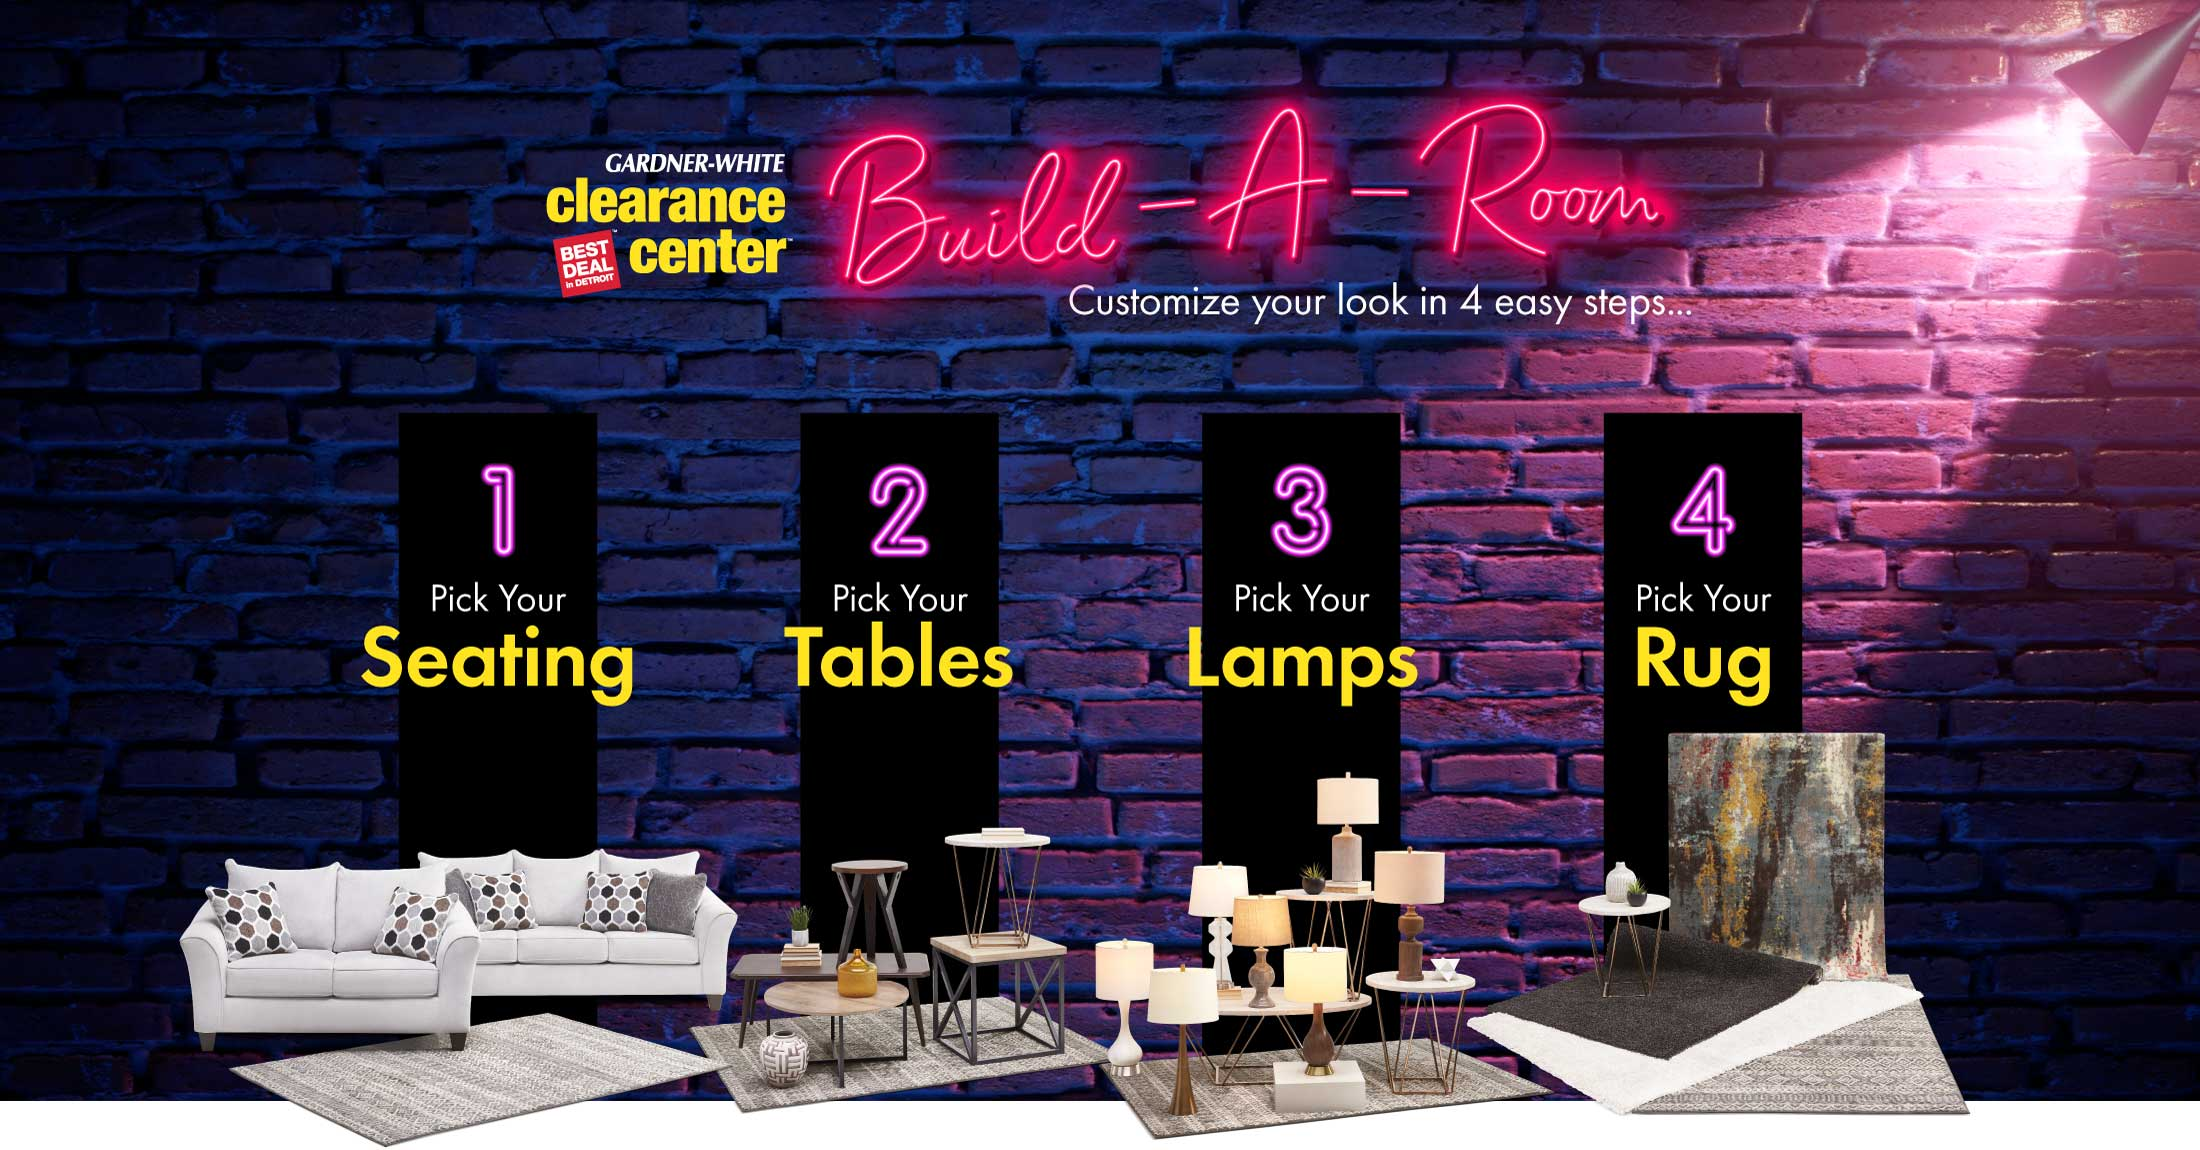 Build-a-Room, customize your look in 4 easy steps: 1 Pick your Seating 2 Pick your Tables 3 Pick your Lamps 4 Pick Your Rug